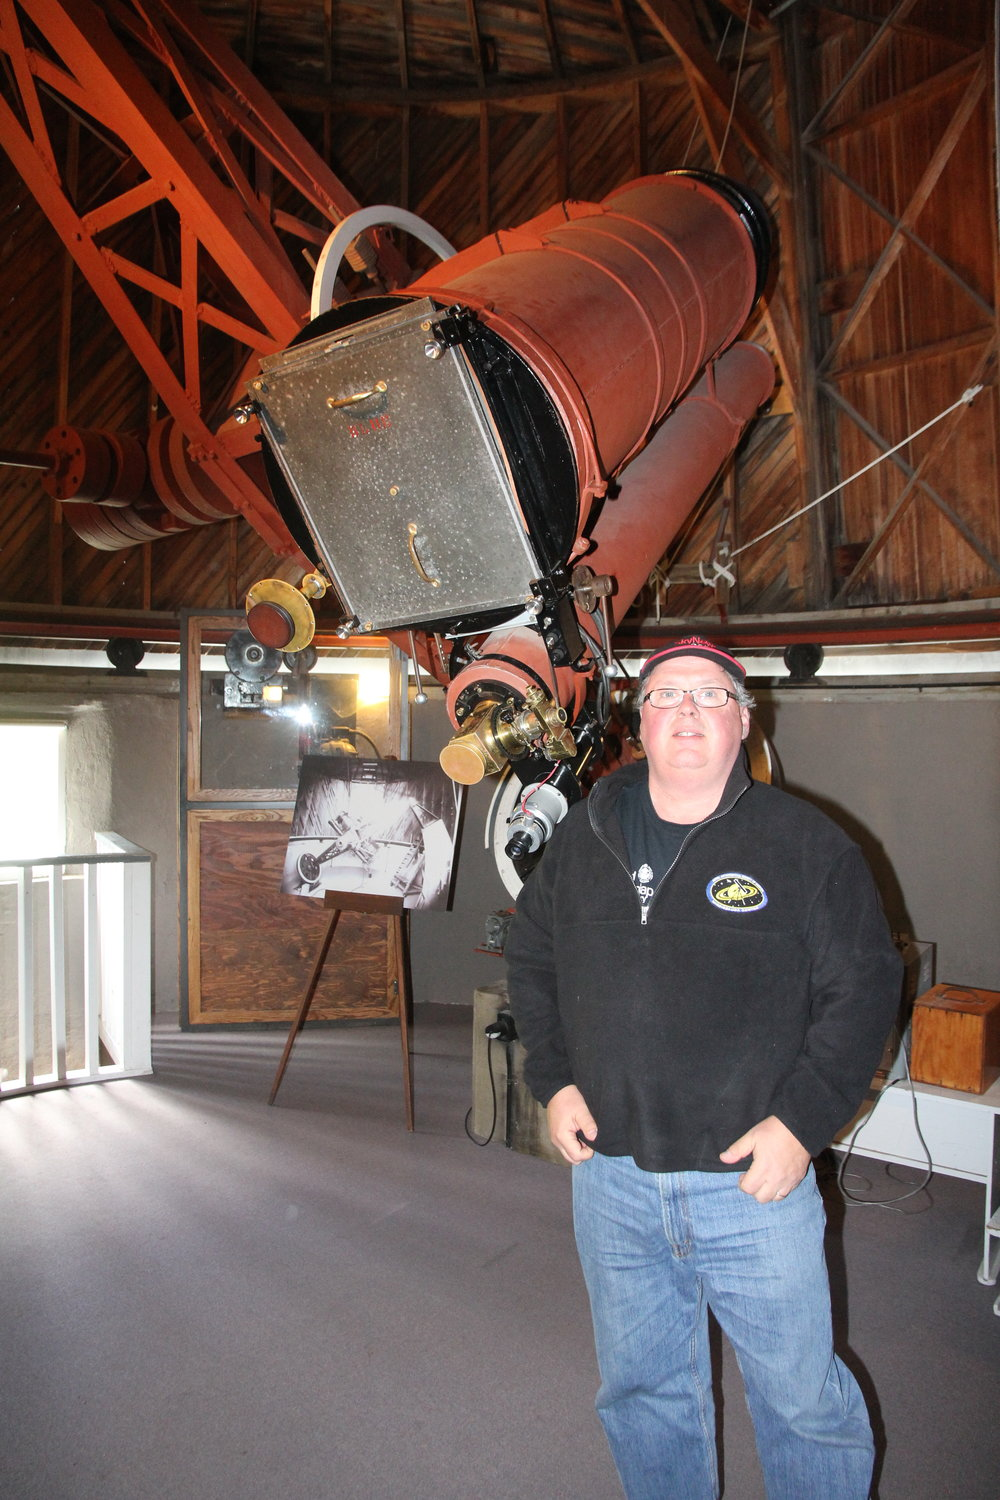 Randy Attwood stands in front of the telescope/camera used to discover Pluto in 1930.